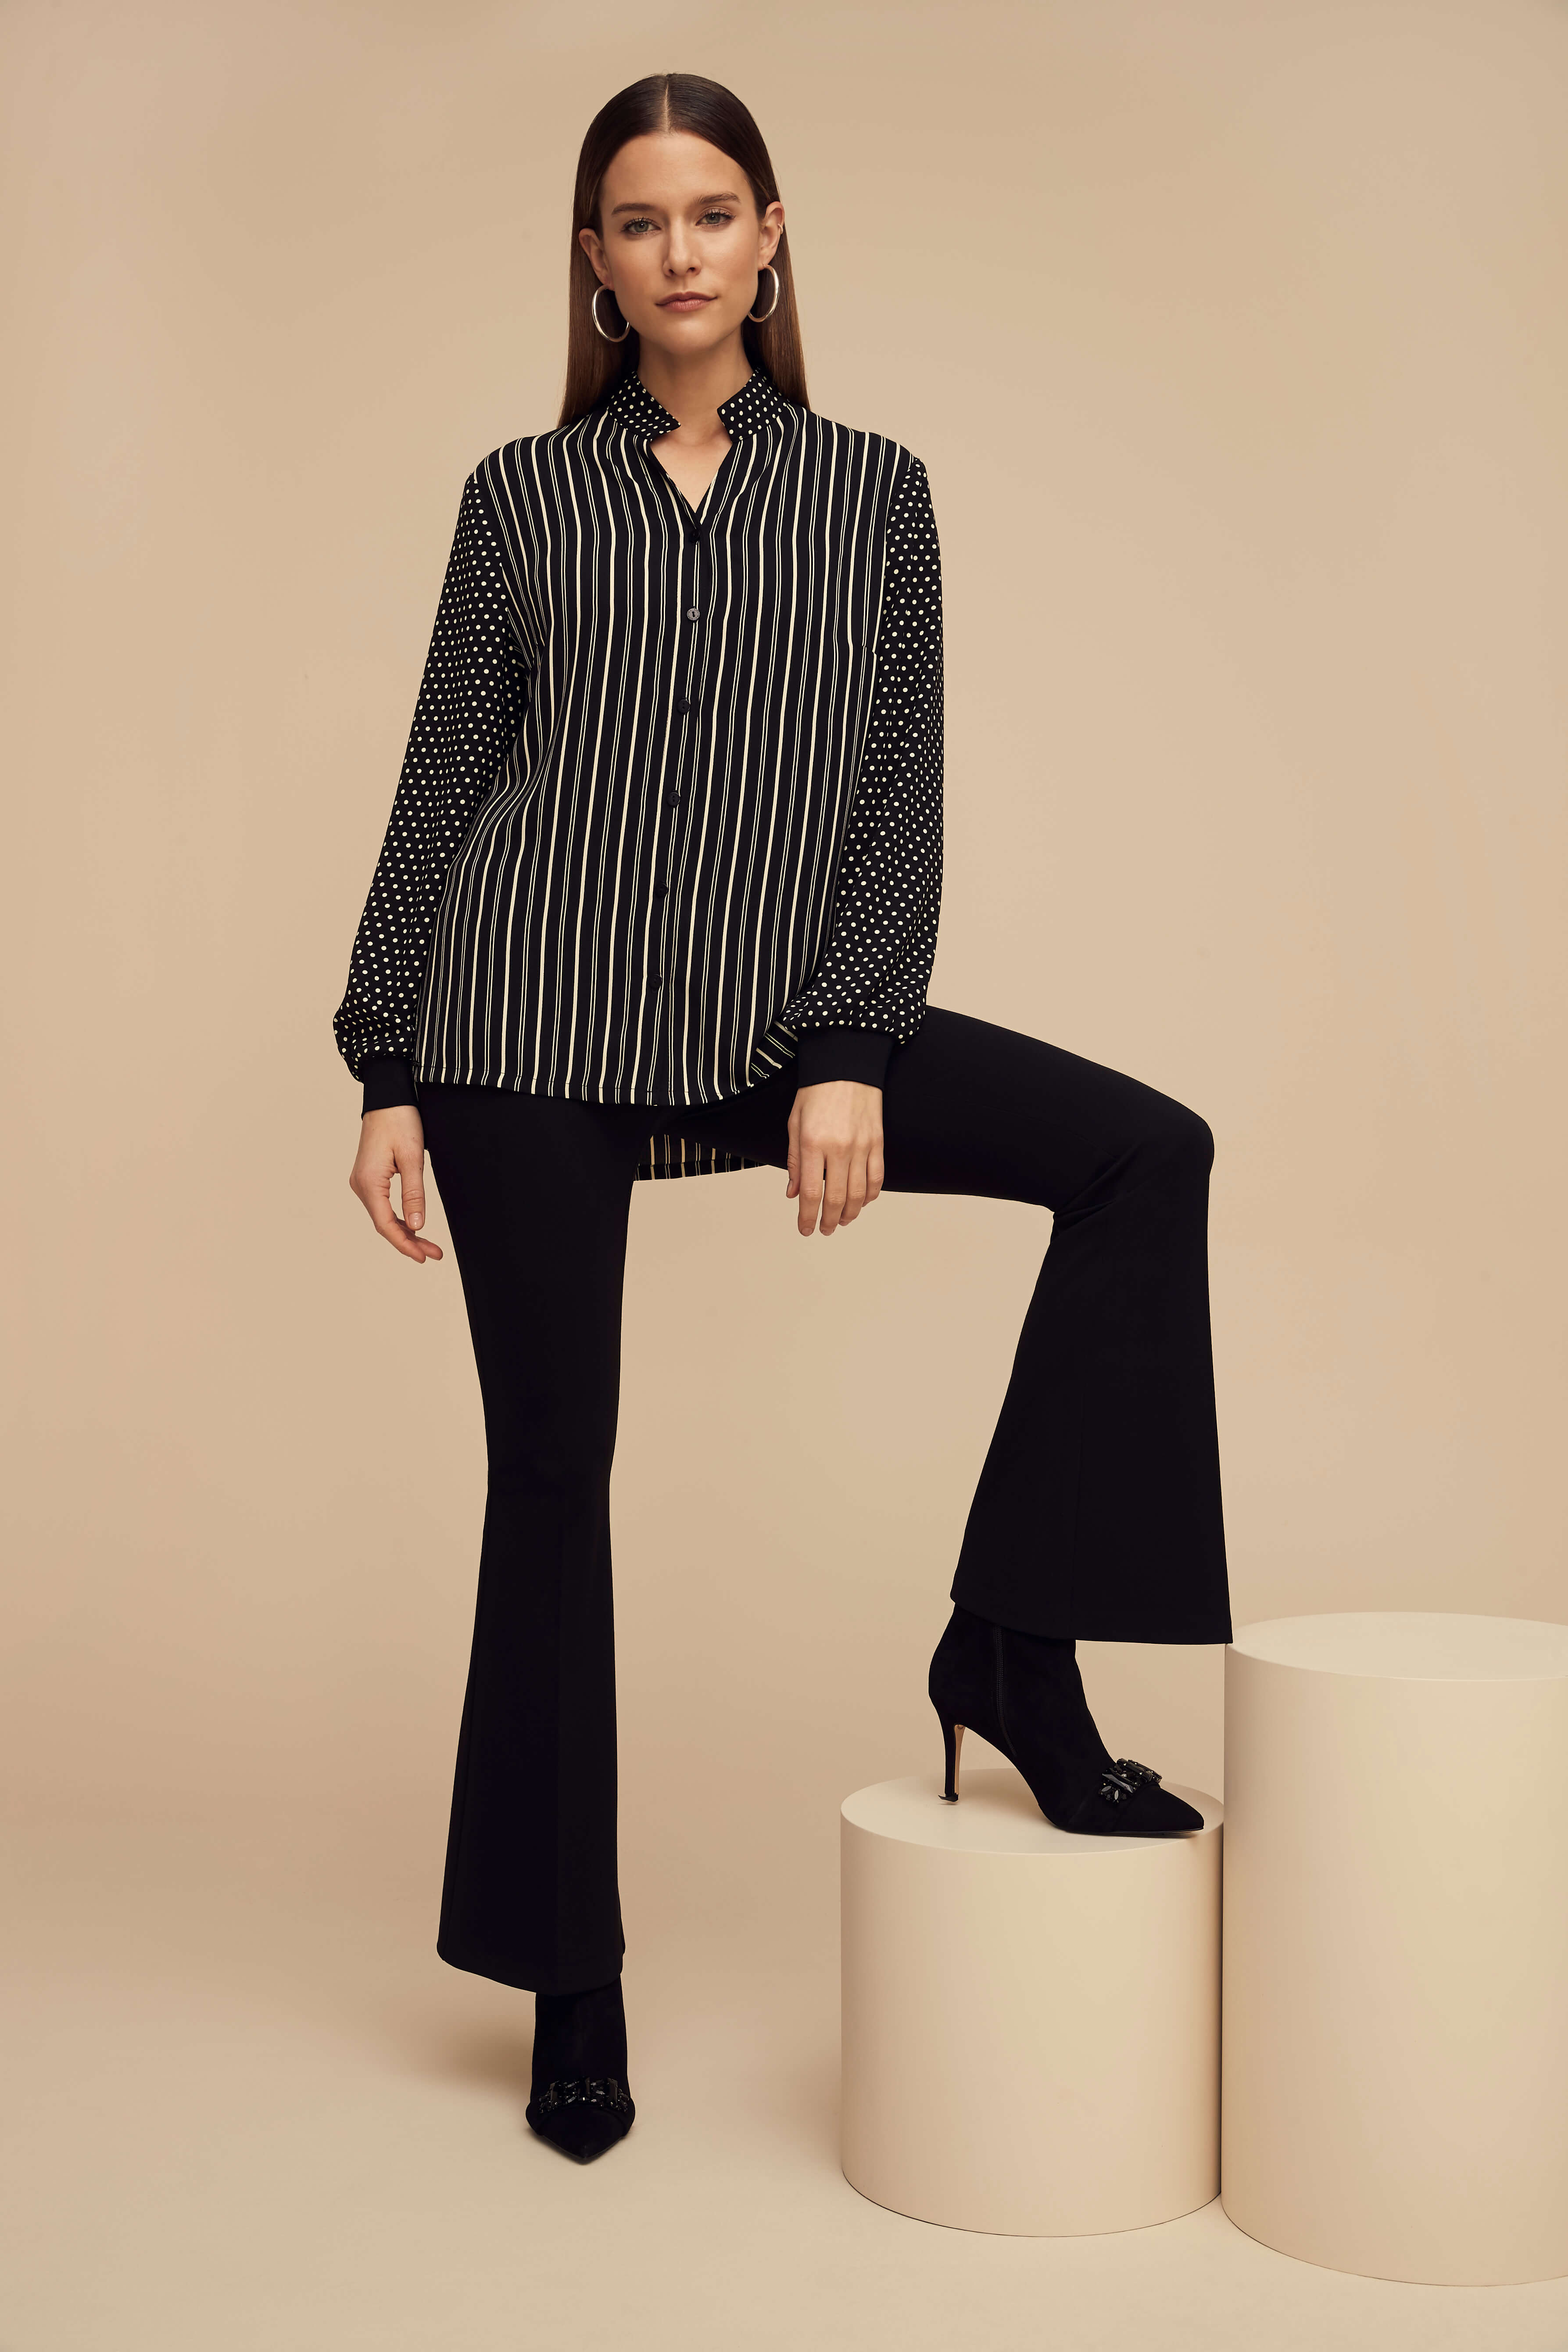 Lisette L. Fall 2020 Essentials, Slim Flared Pants Style 176686 Kathryn PDR Color Black